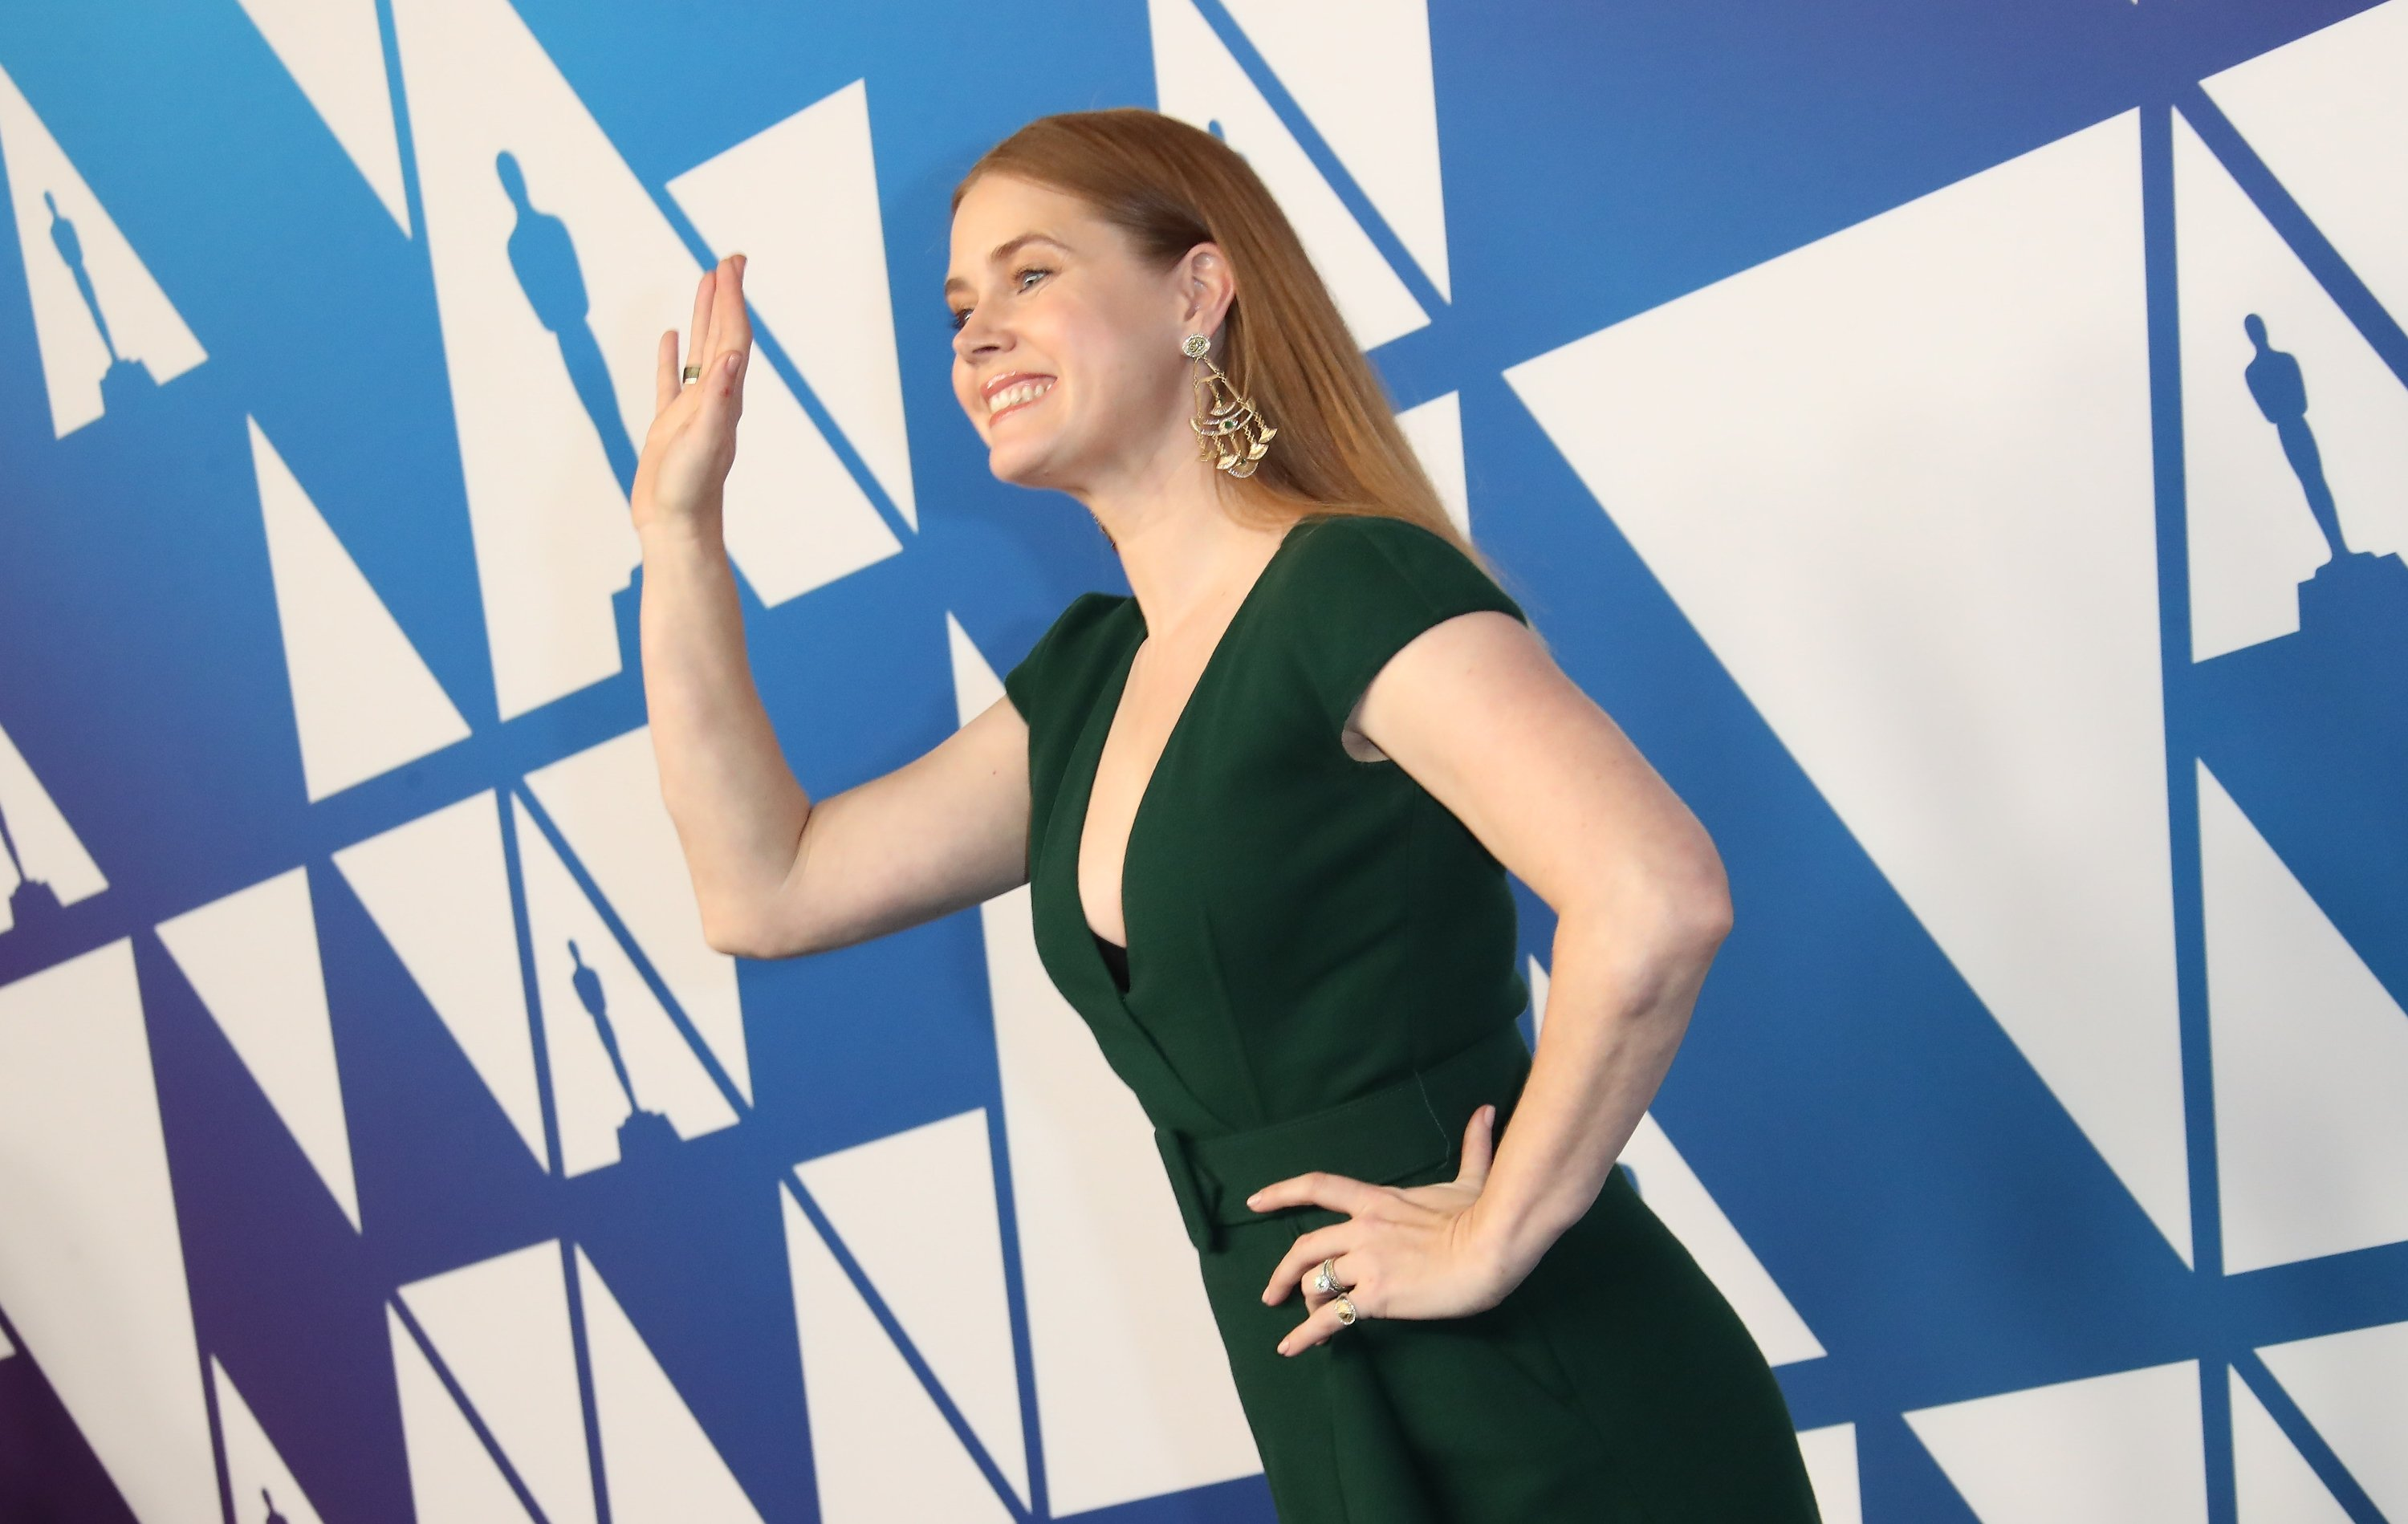 Amy Adams at the 91st Oscars Nominees Luncheon on February 4, 2019 in Beverly Hills, California. | Photo: Getty Images